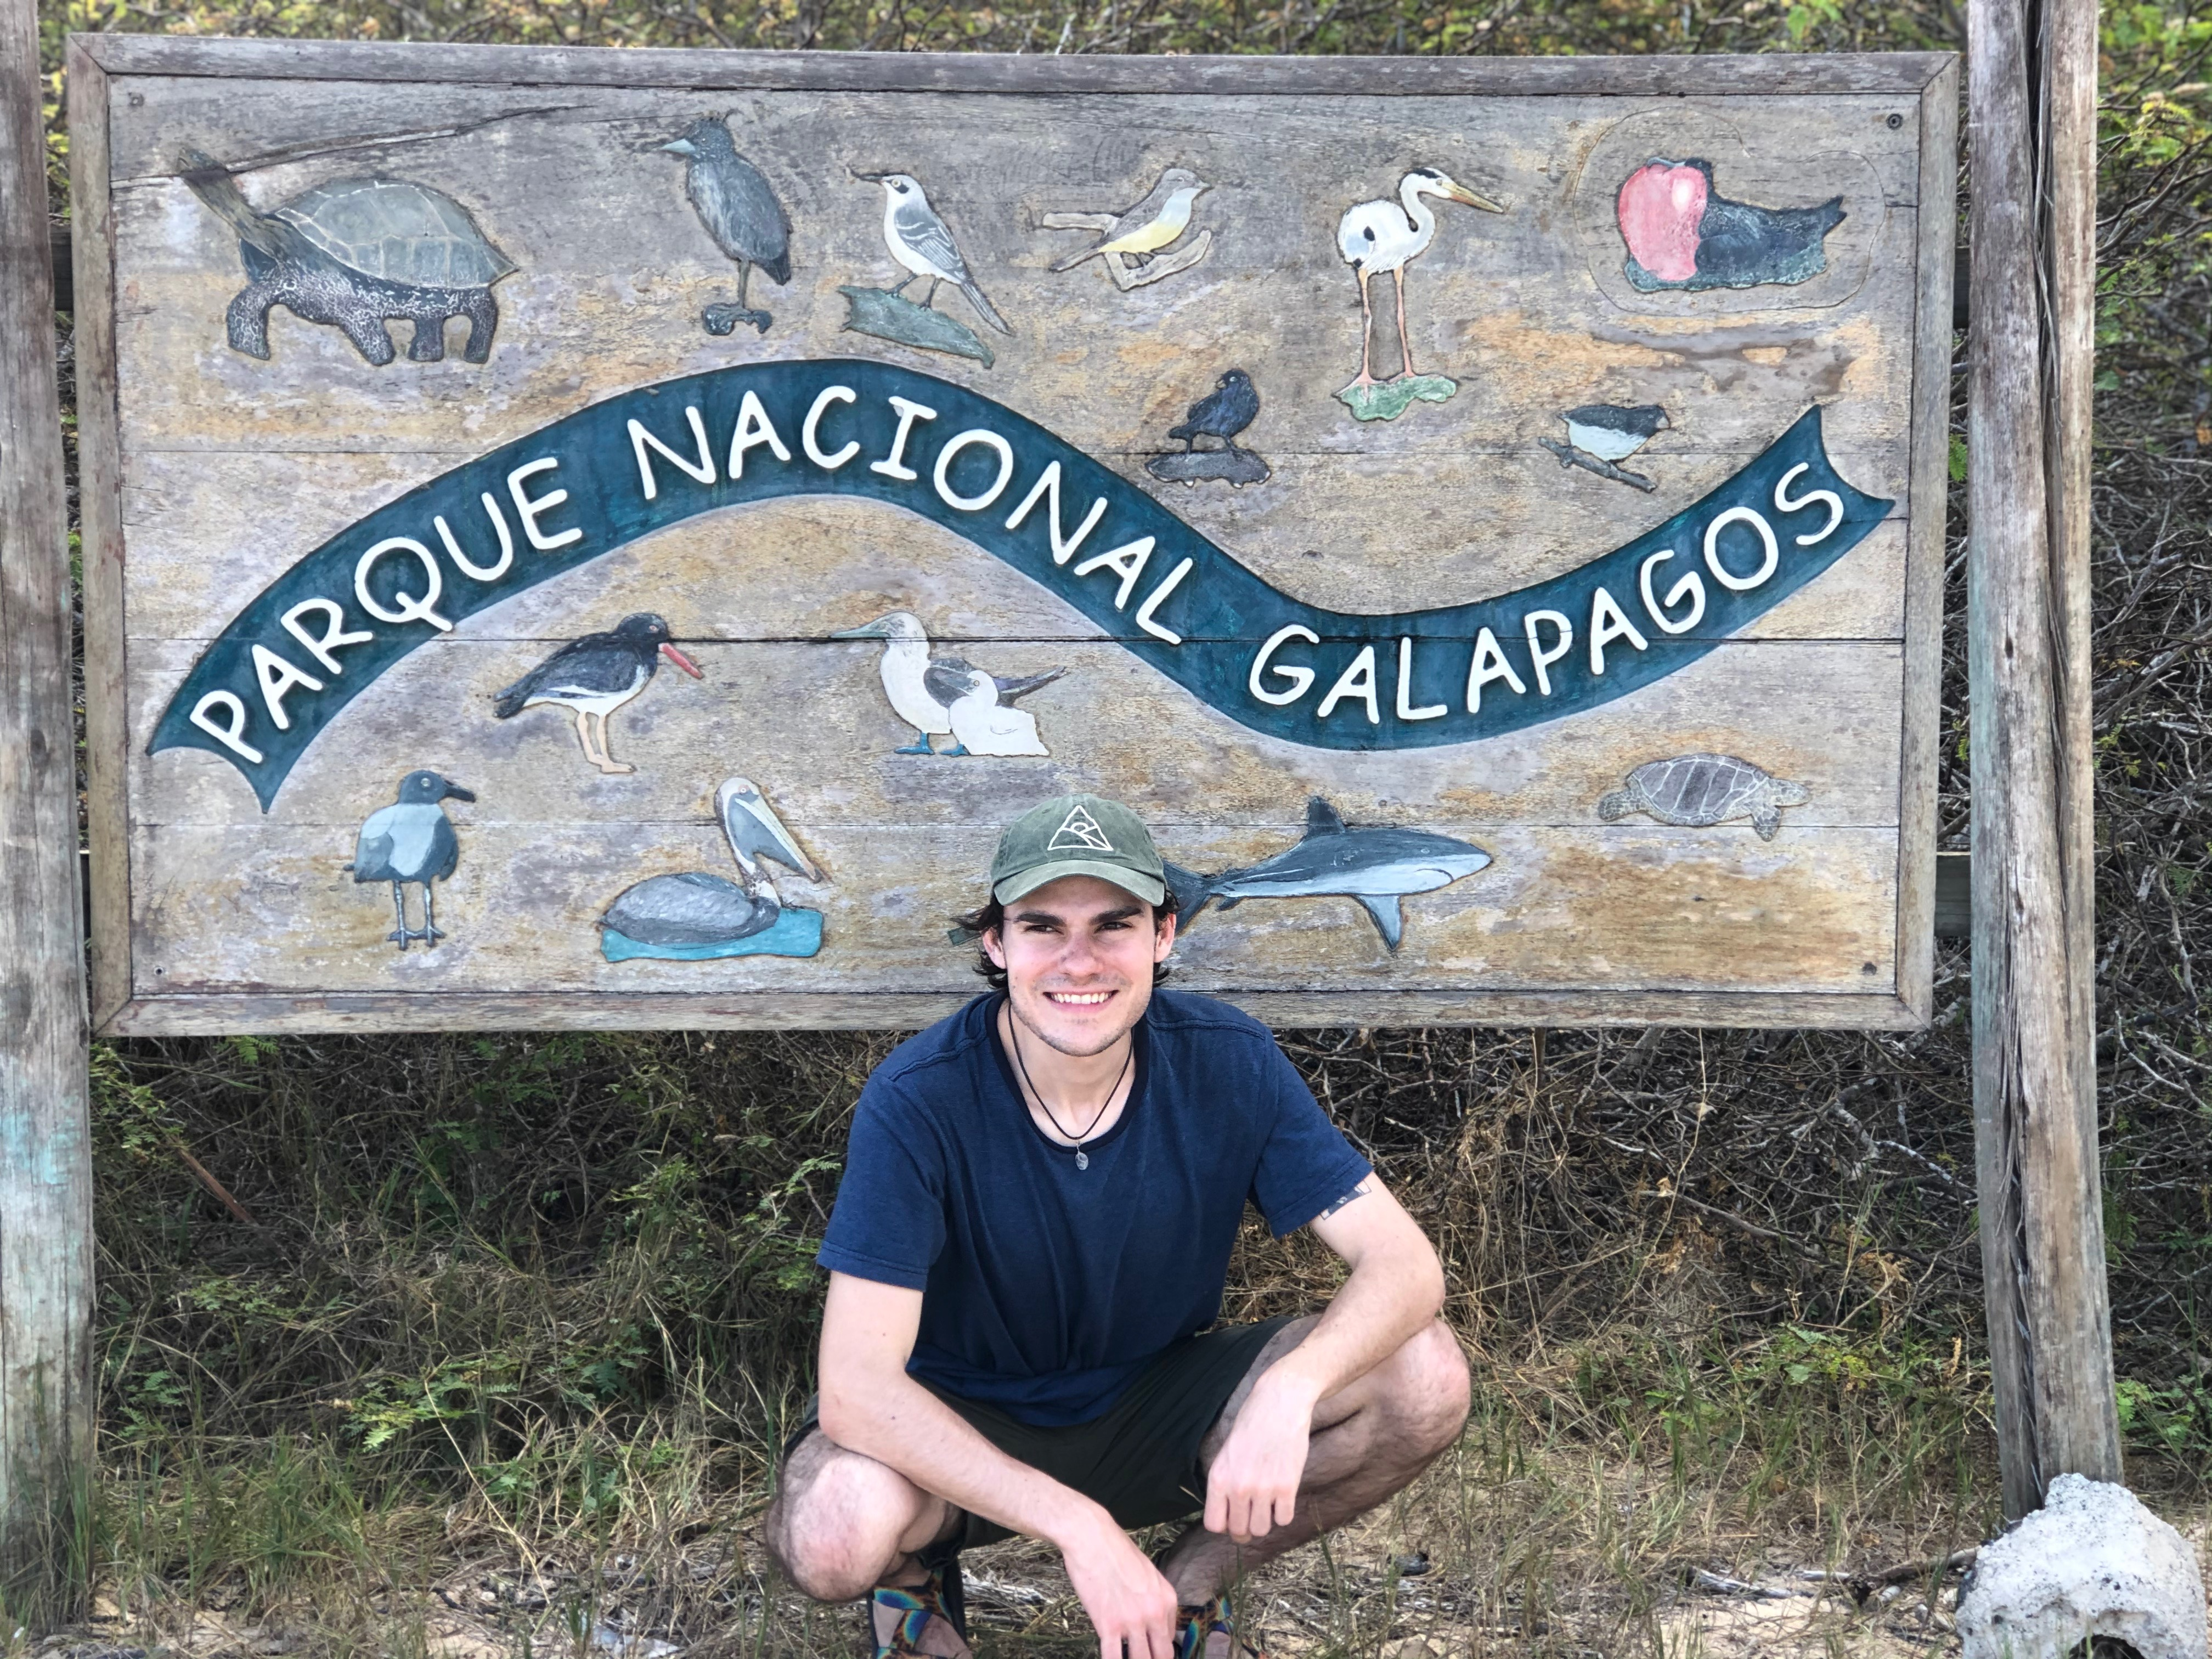 Student in Galapagos Islands